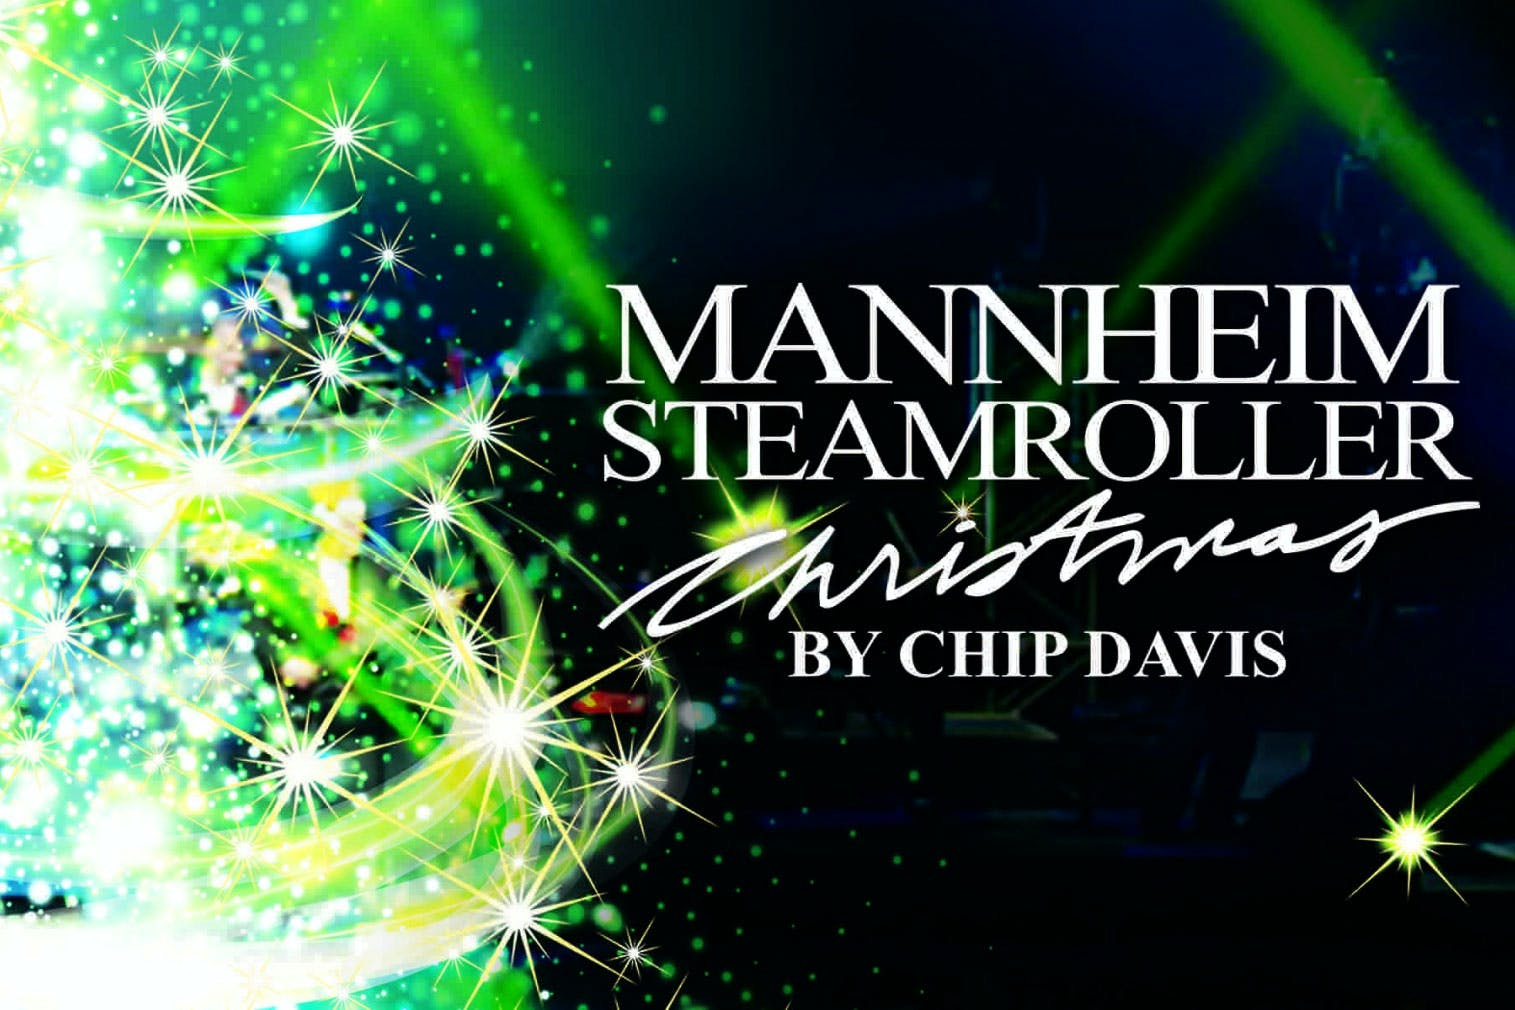 Mannheim-Steamroller-Christmas-smart-financial-centre-tx